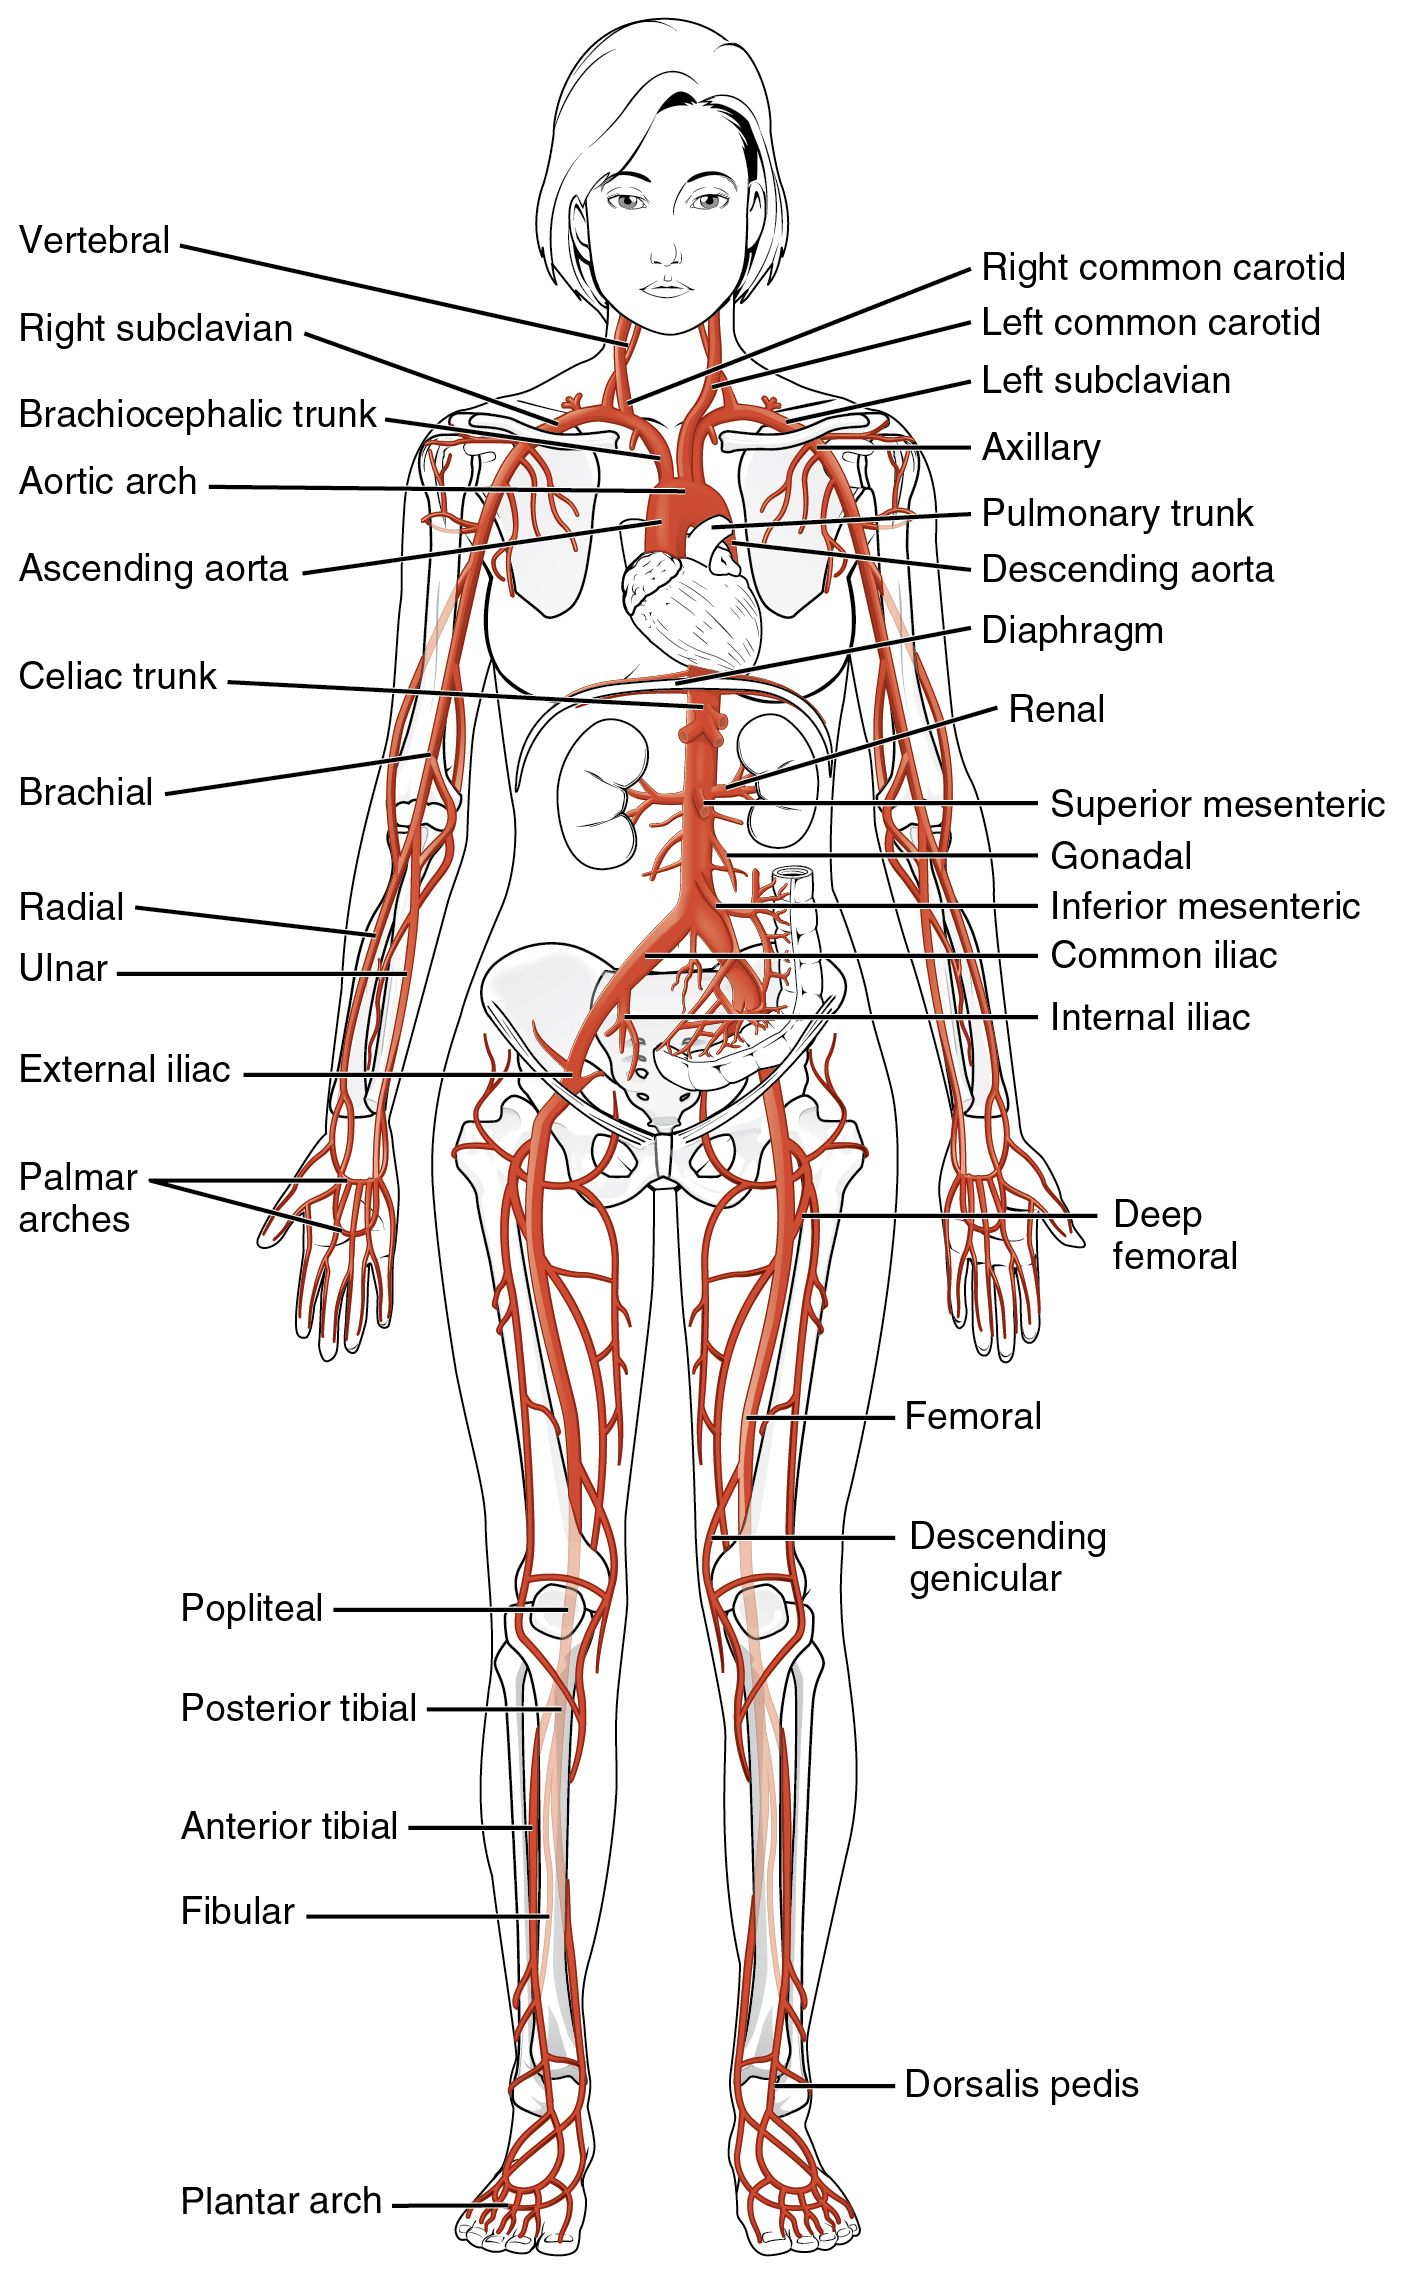 Artery Anatomy Diagram - Basic Guide Wiring Diagram •